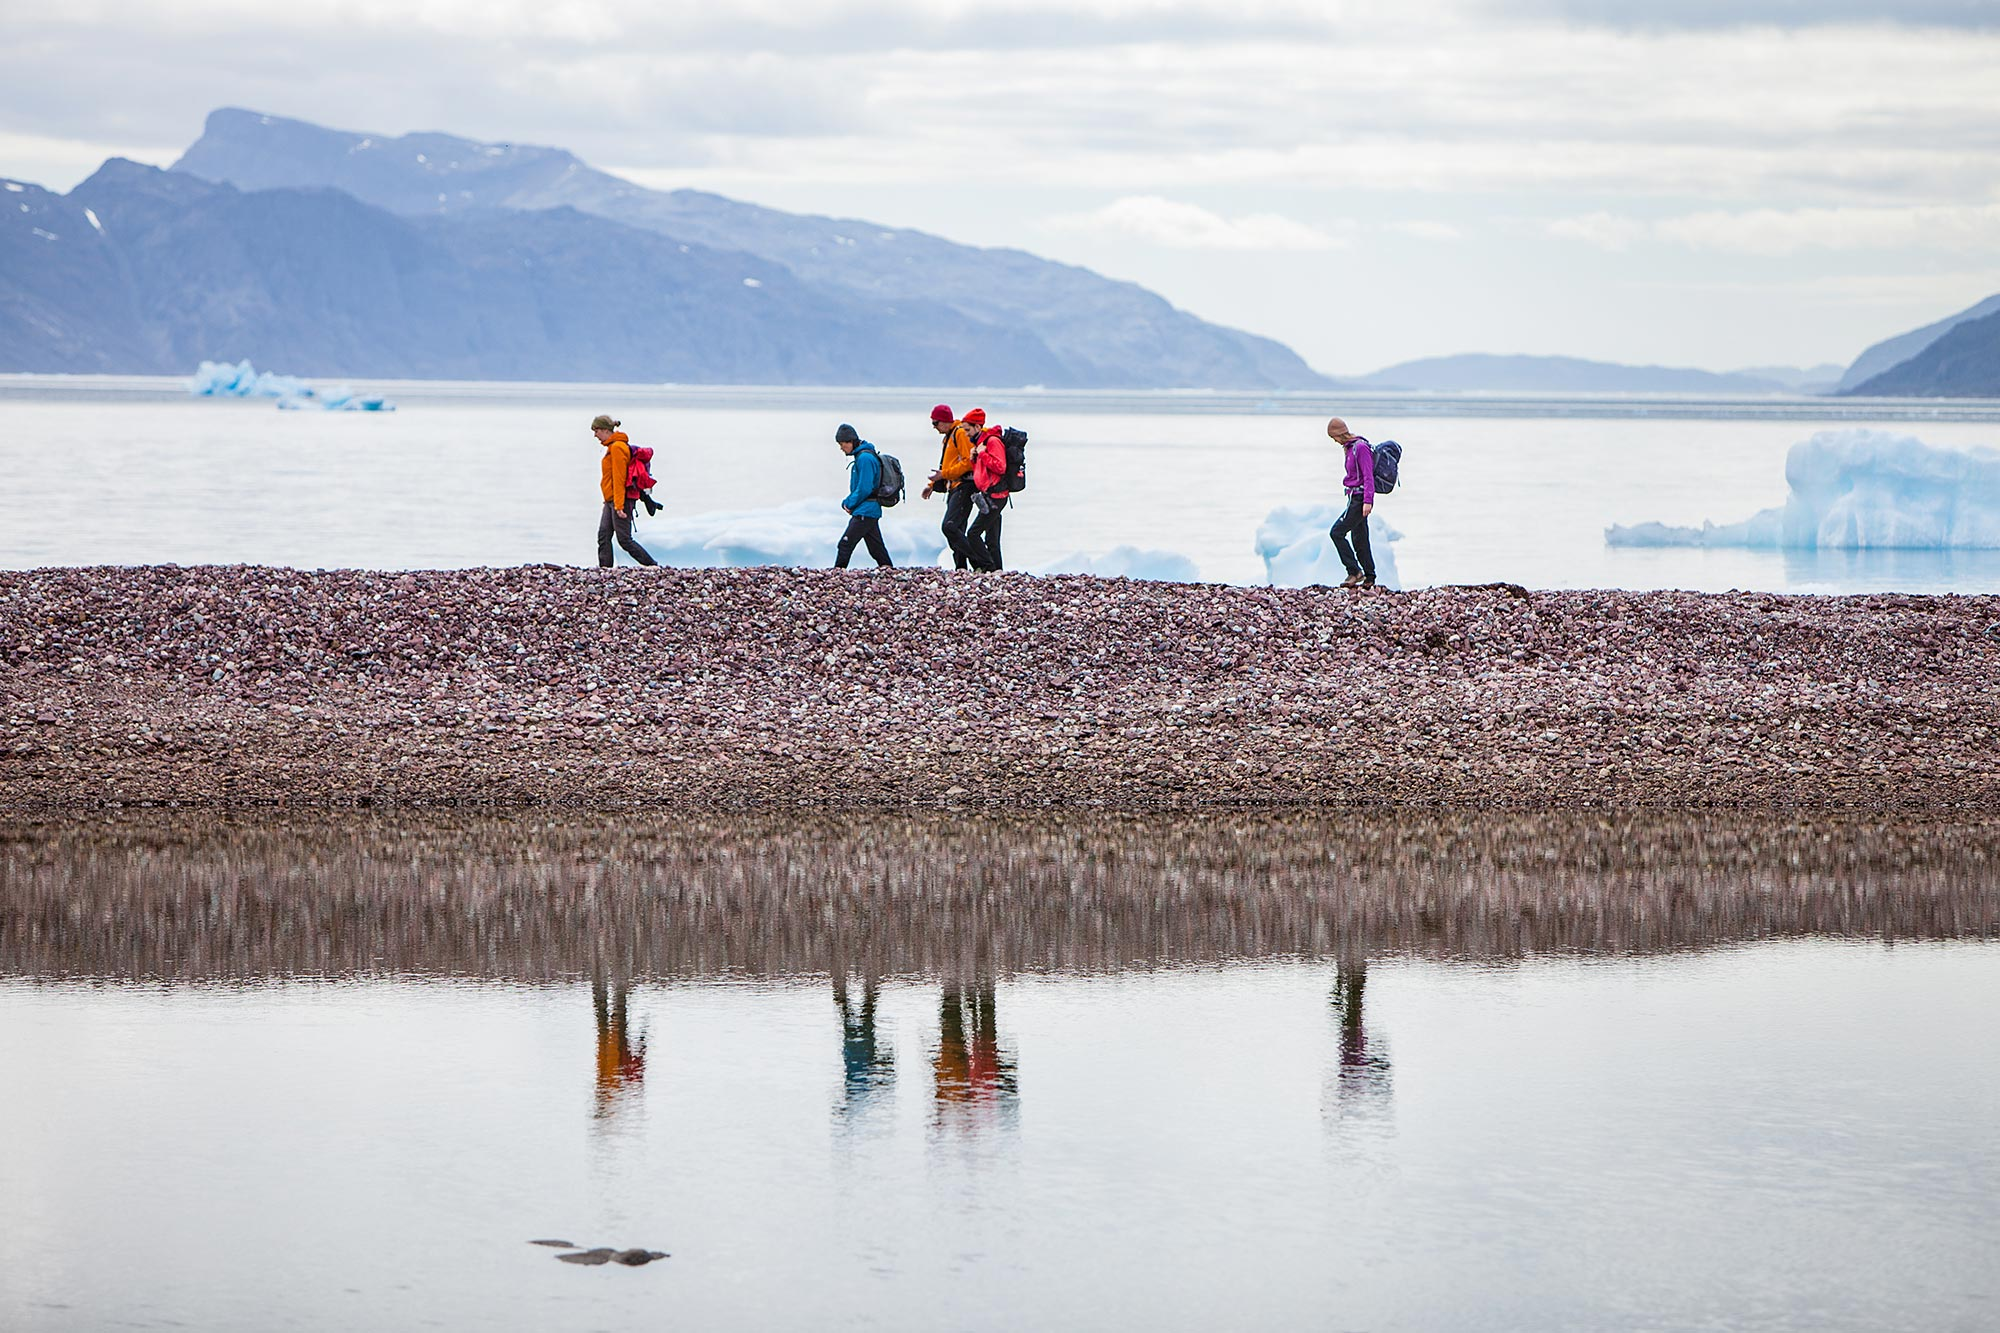 hikers in beautiful landscapes, icebergs and fjords reflected